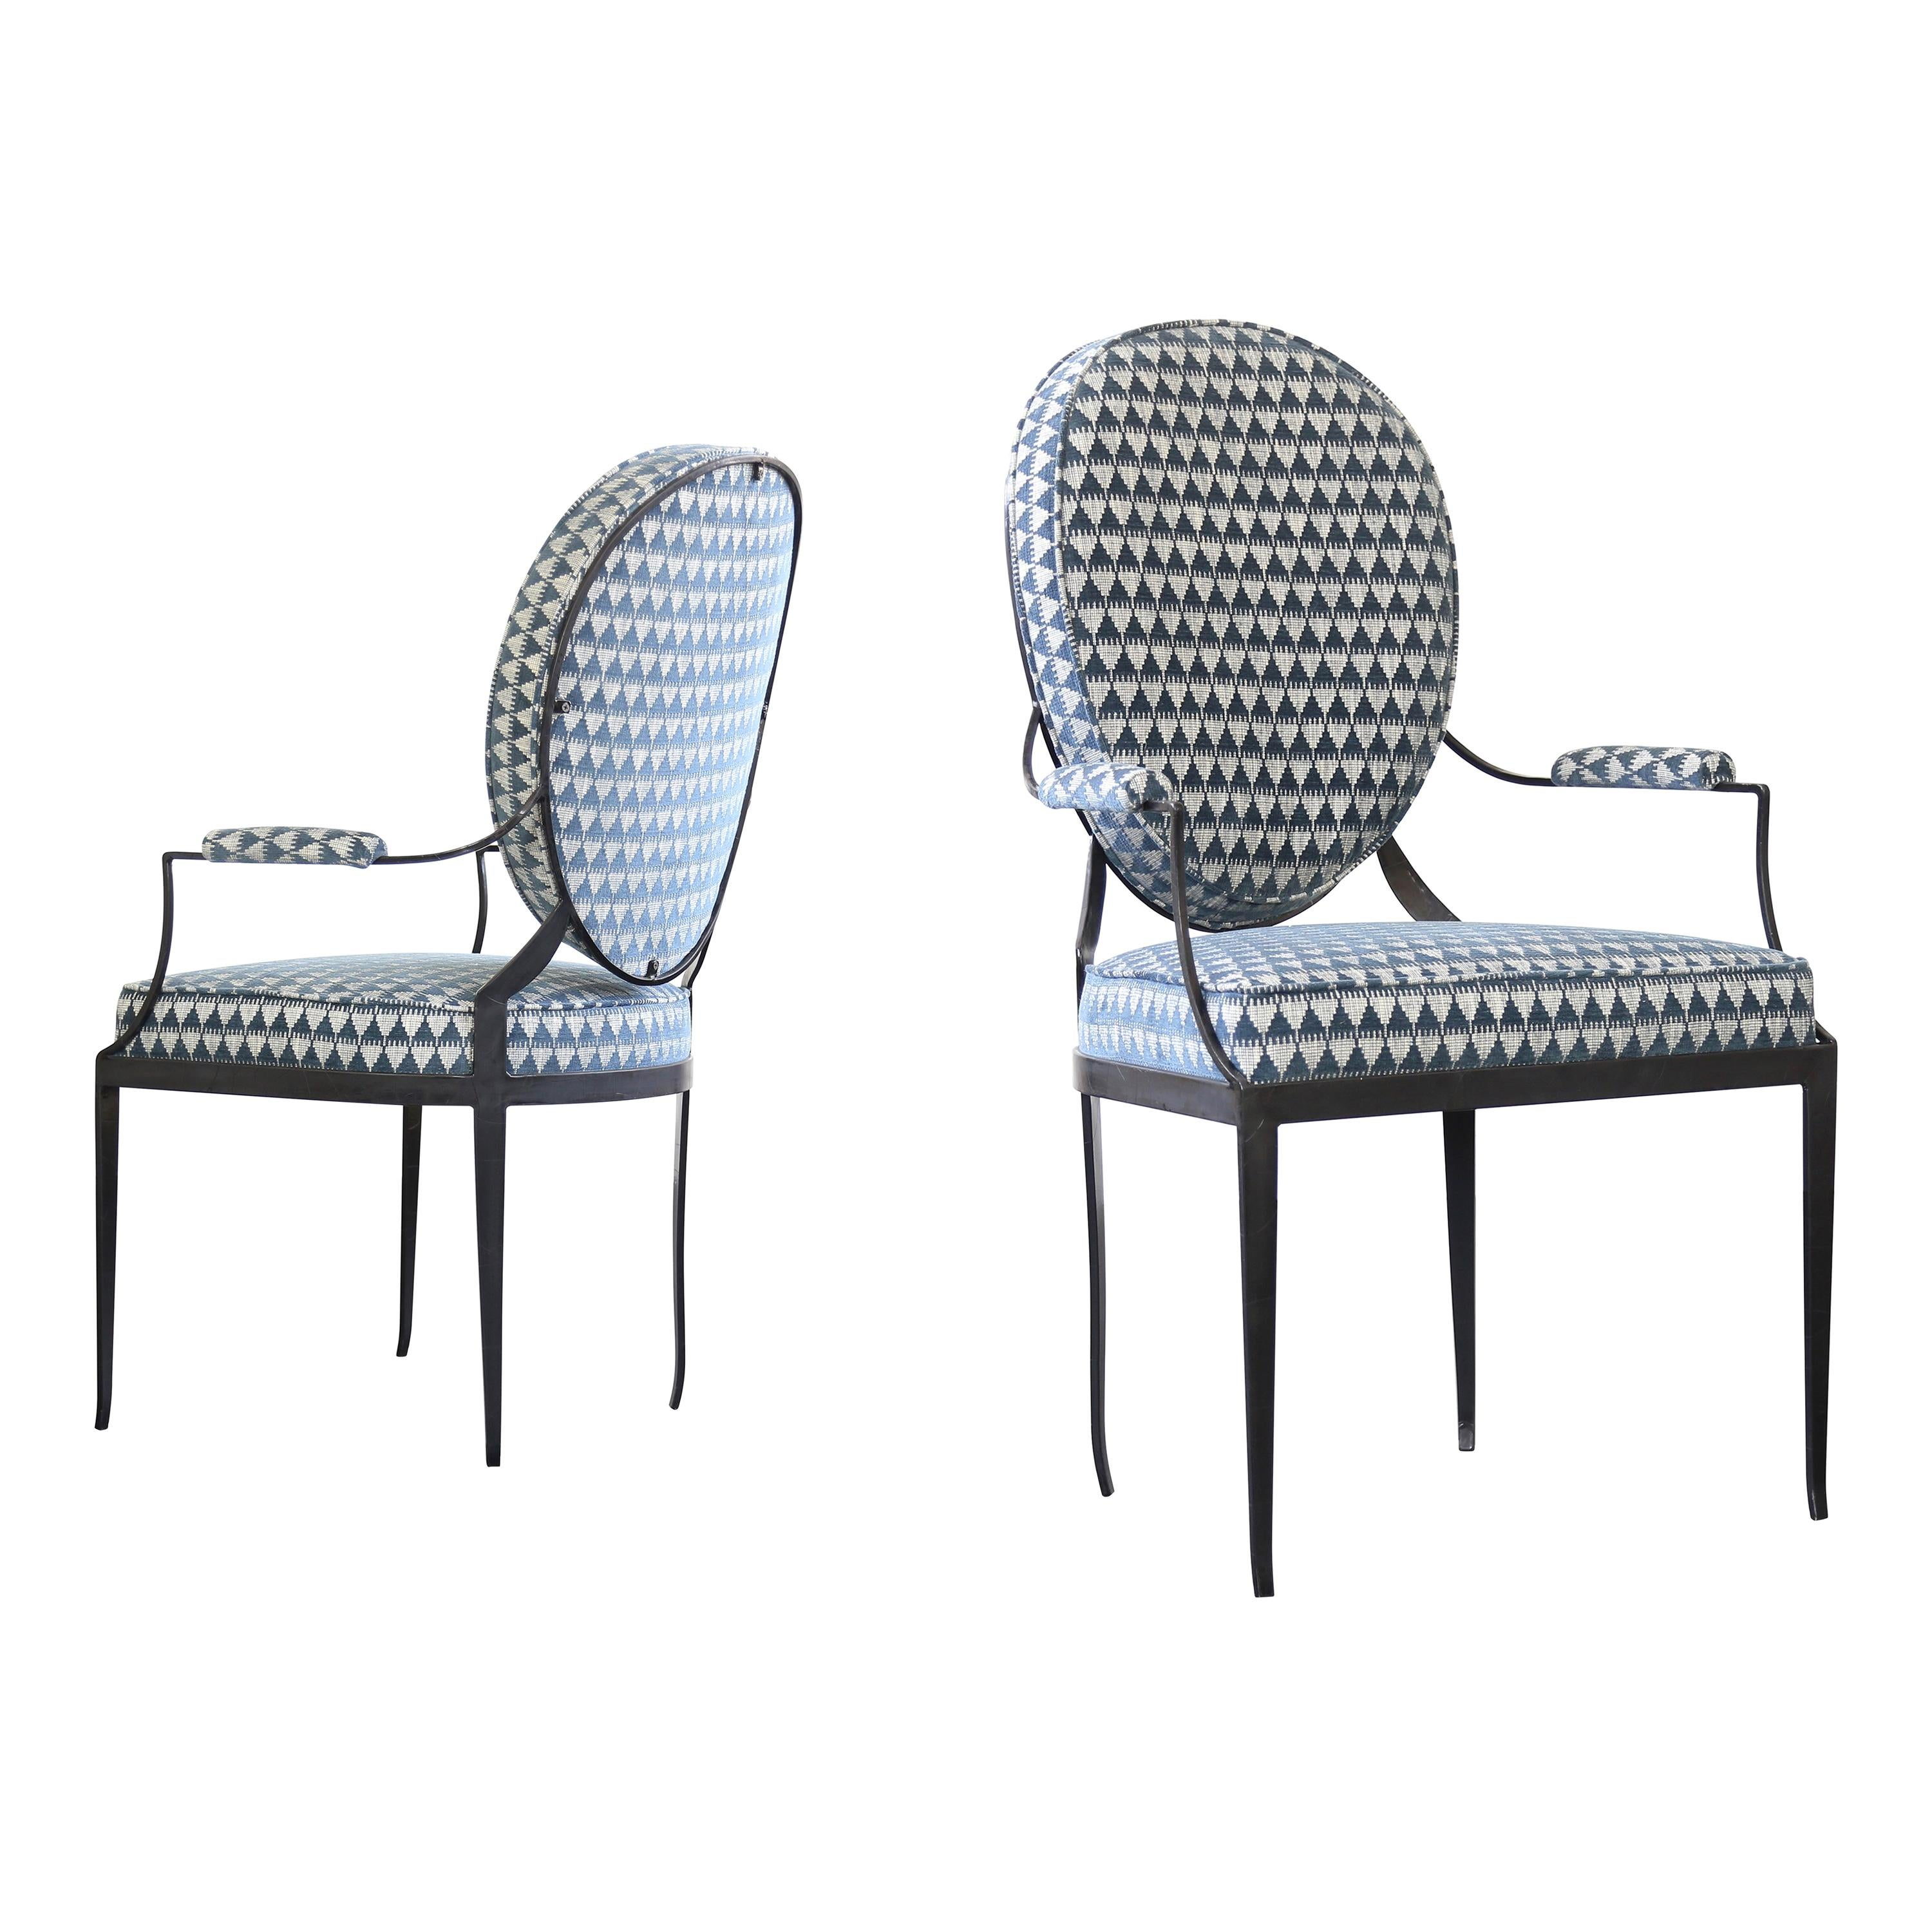 Hand Forged Iron Chair in Style of Andre Arbus, from Costantini, Customizable